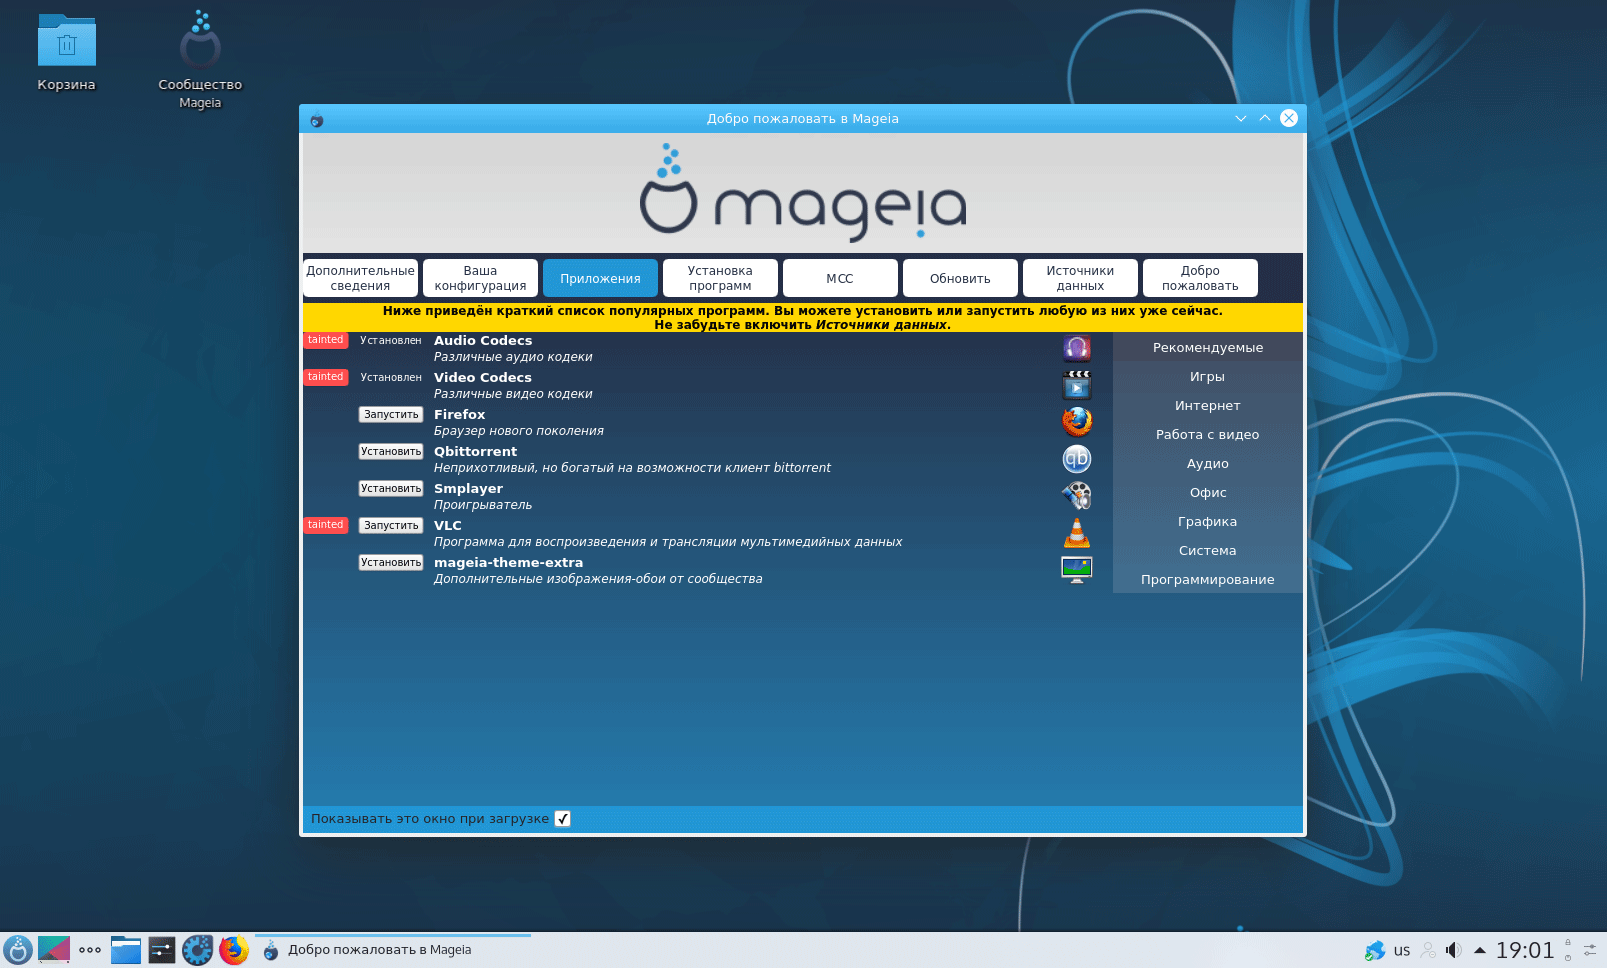 https://interface31.ru/tech_it/images/Mageia-7-009.png